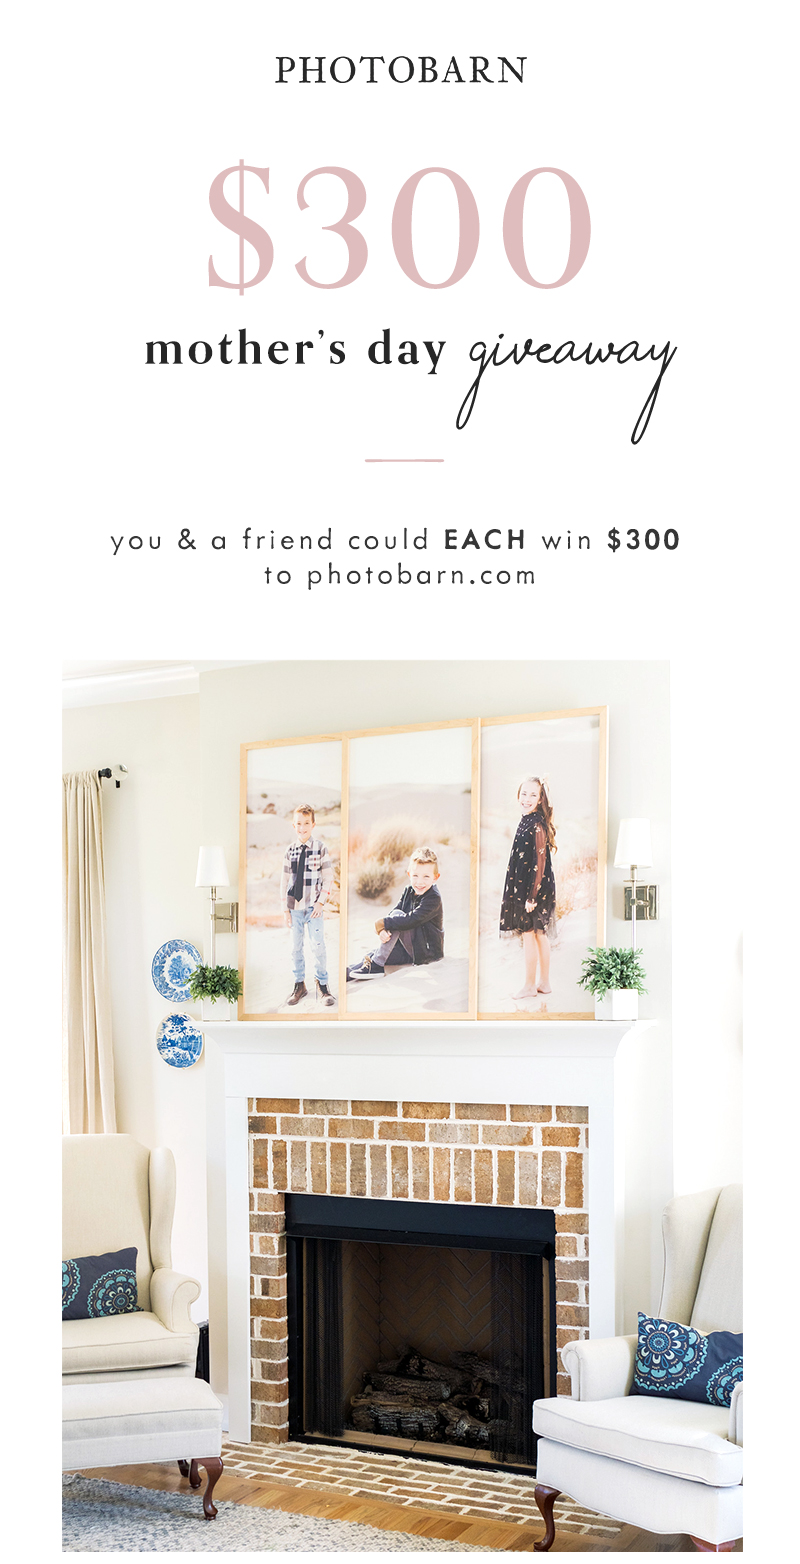 $300 Mother's Day Giveaway! You and a friend could EACH win $300 to PhotoBarn.com